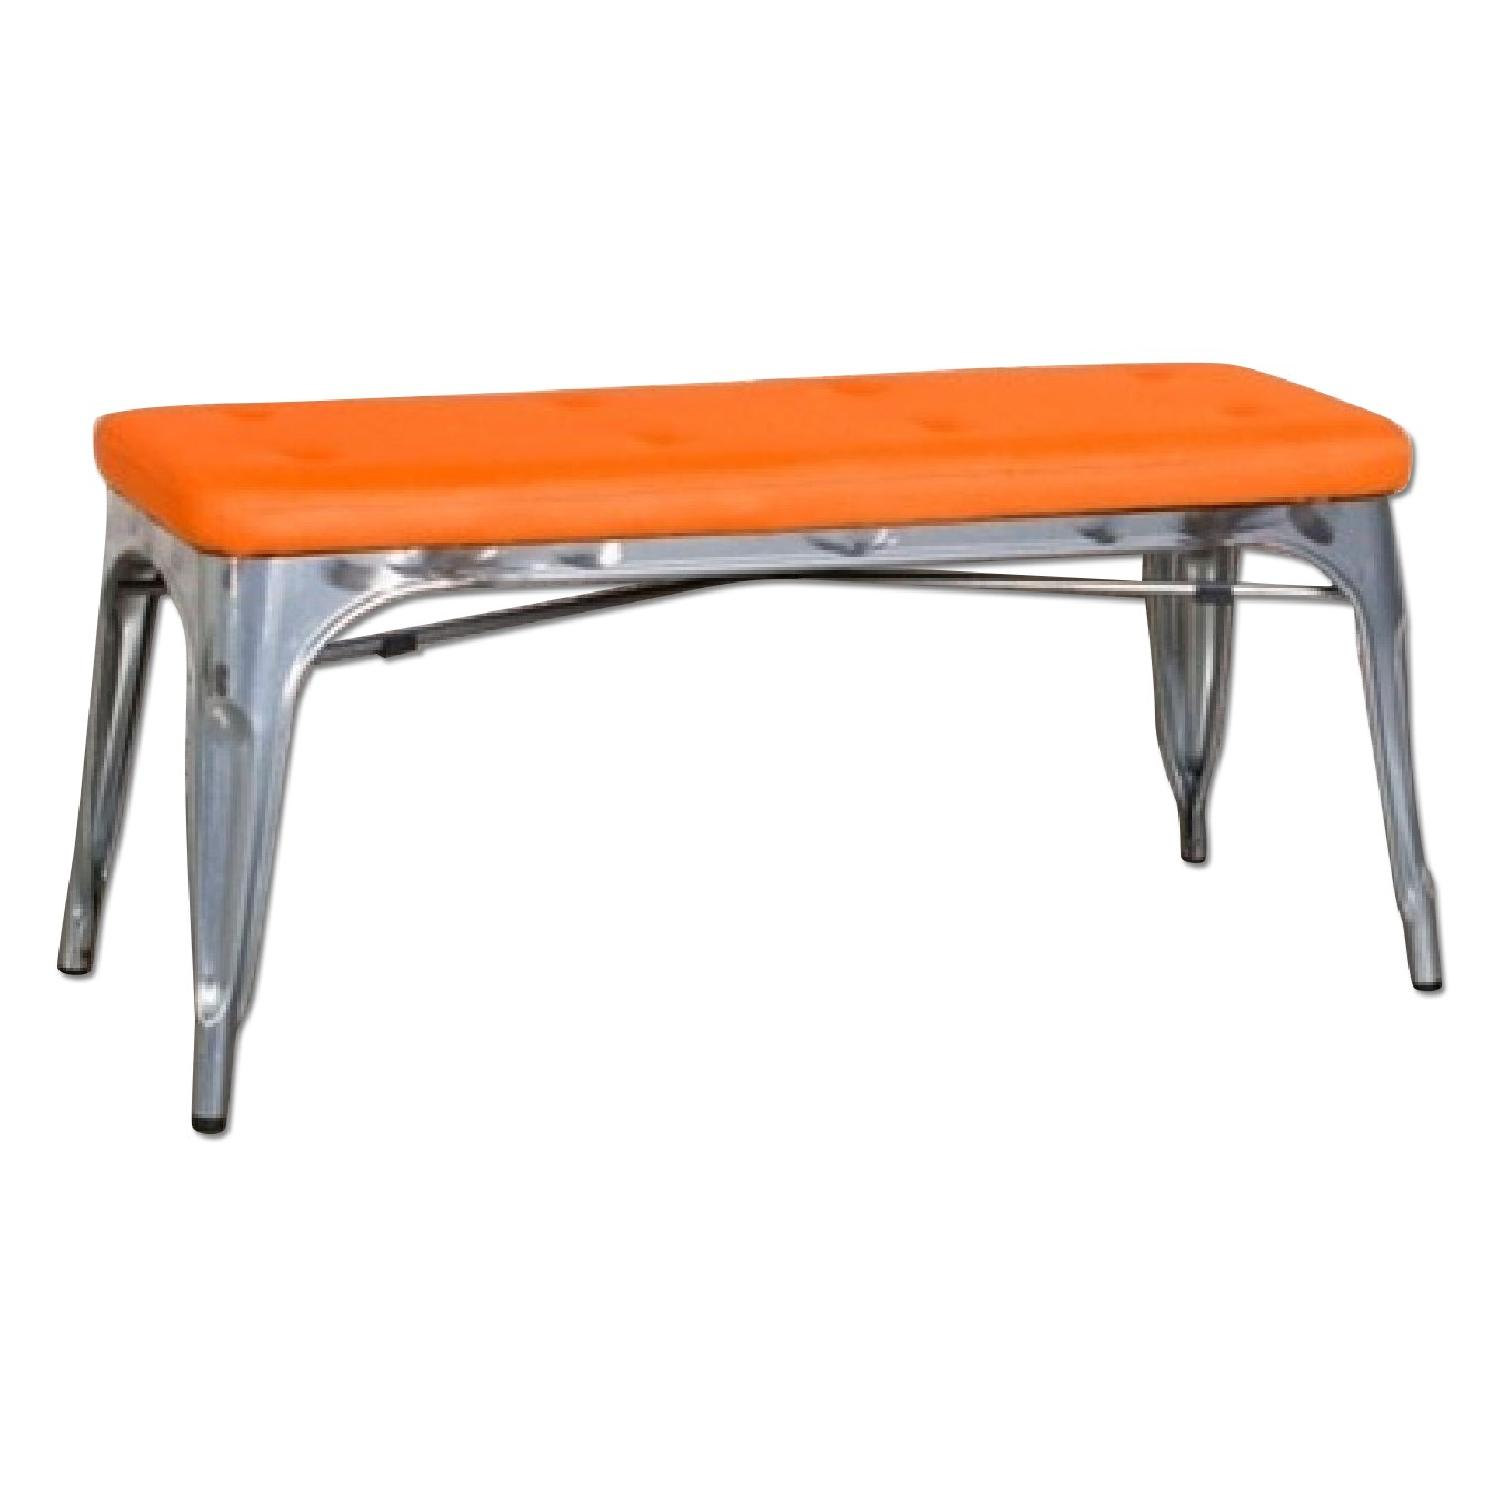 Bench in Galvanized Steel w/ Orange Mesh Cushion - image-0